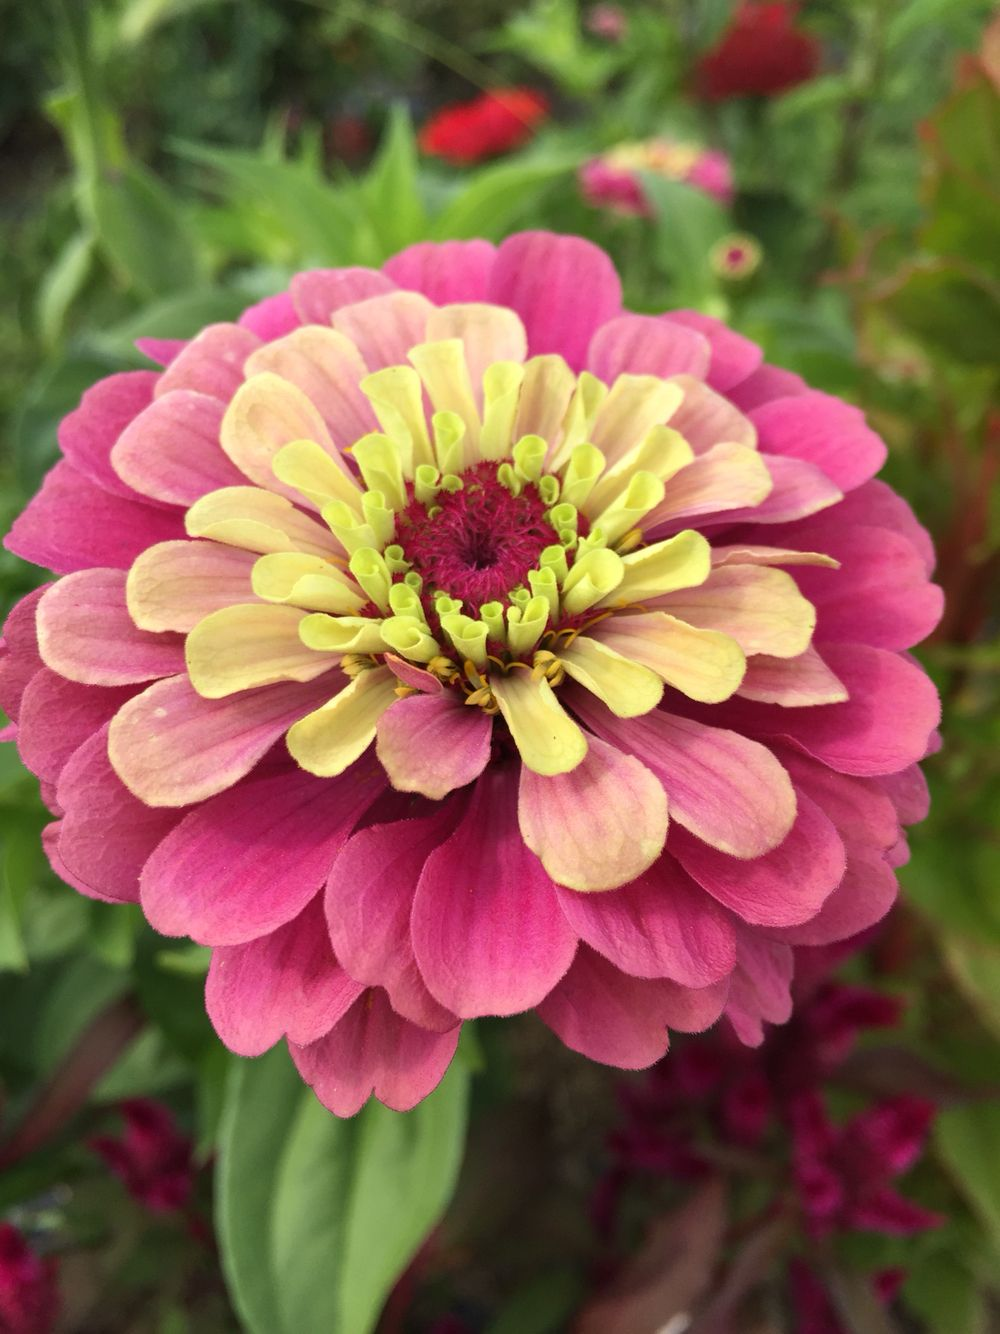 Queen red lime zinnia (With images) Flower farm, Zinnia